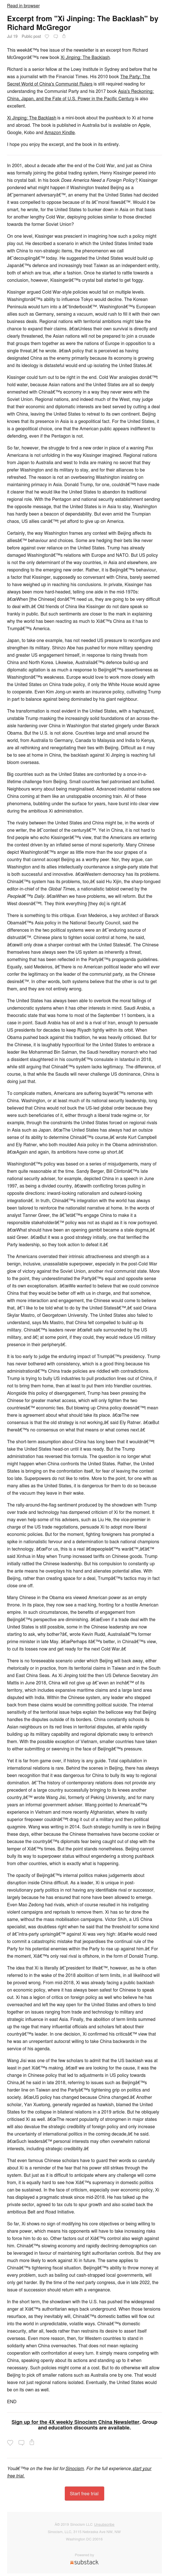 """Excerpt from """"Xi Jinping: The Backlash"""" by Richard McGregor"""